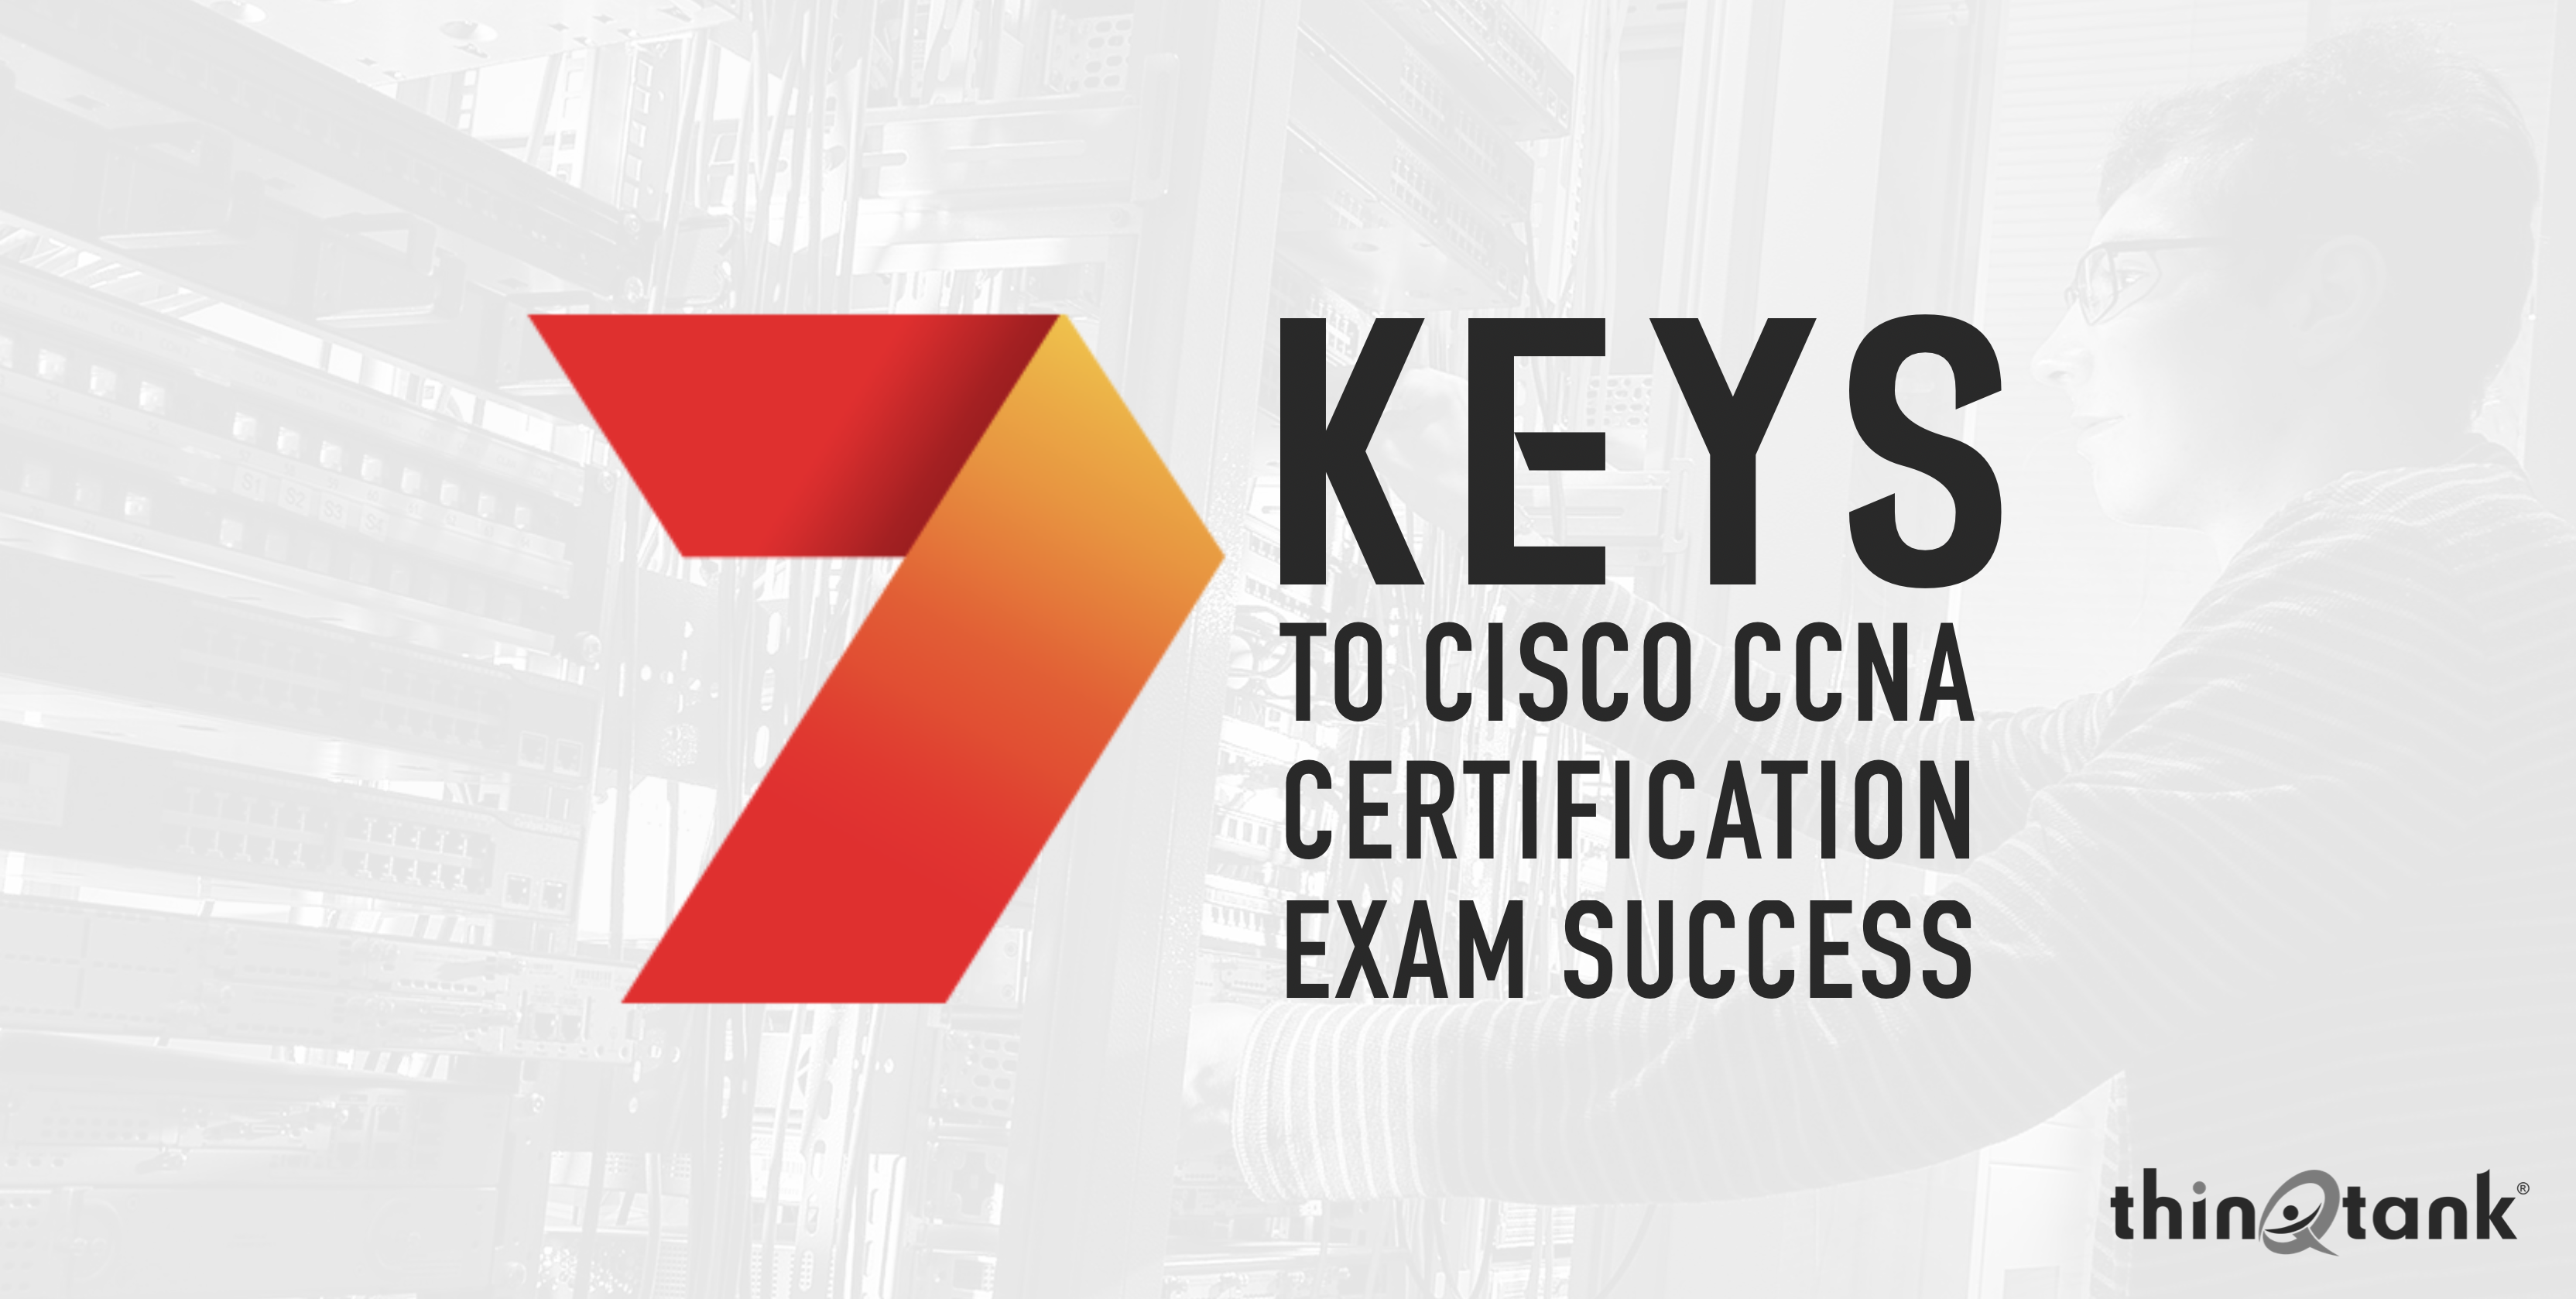 7 Keys To Cisco Ccna Certification Exam Success Thinqtank Learning